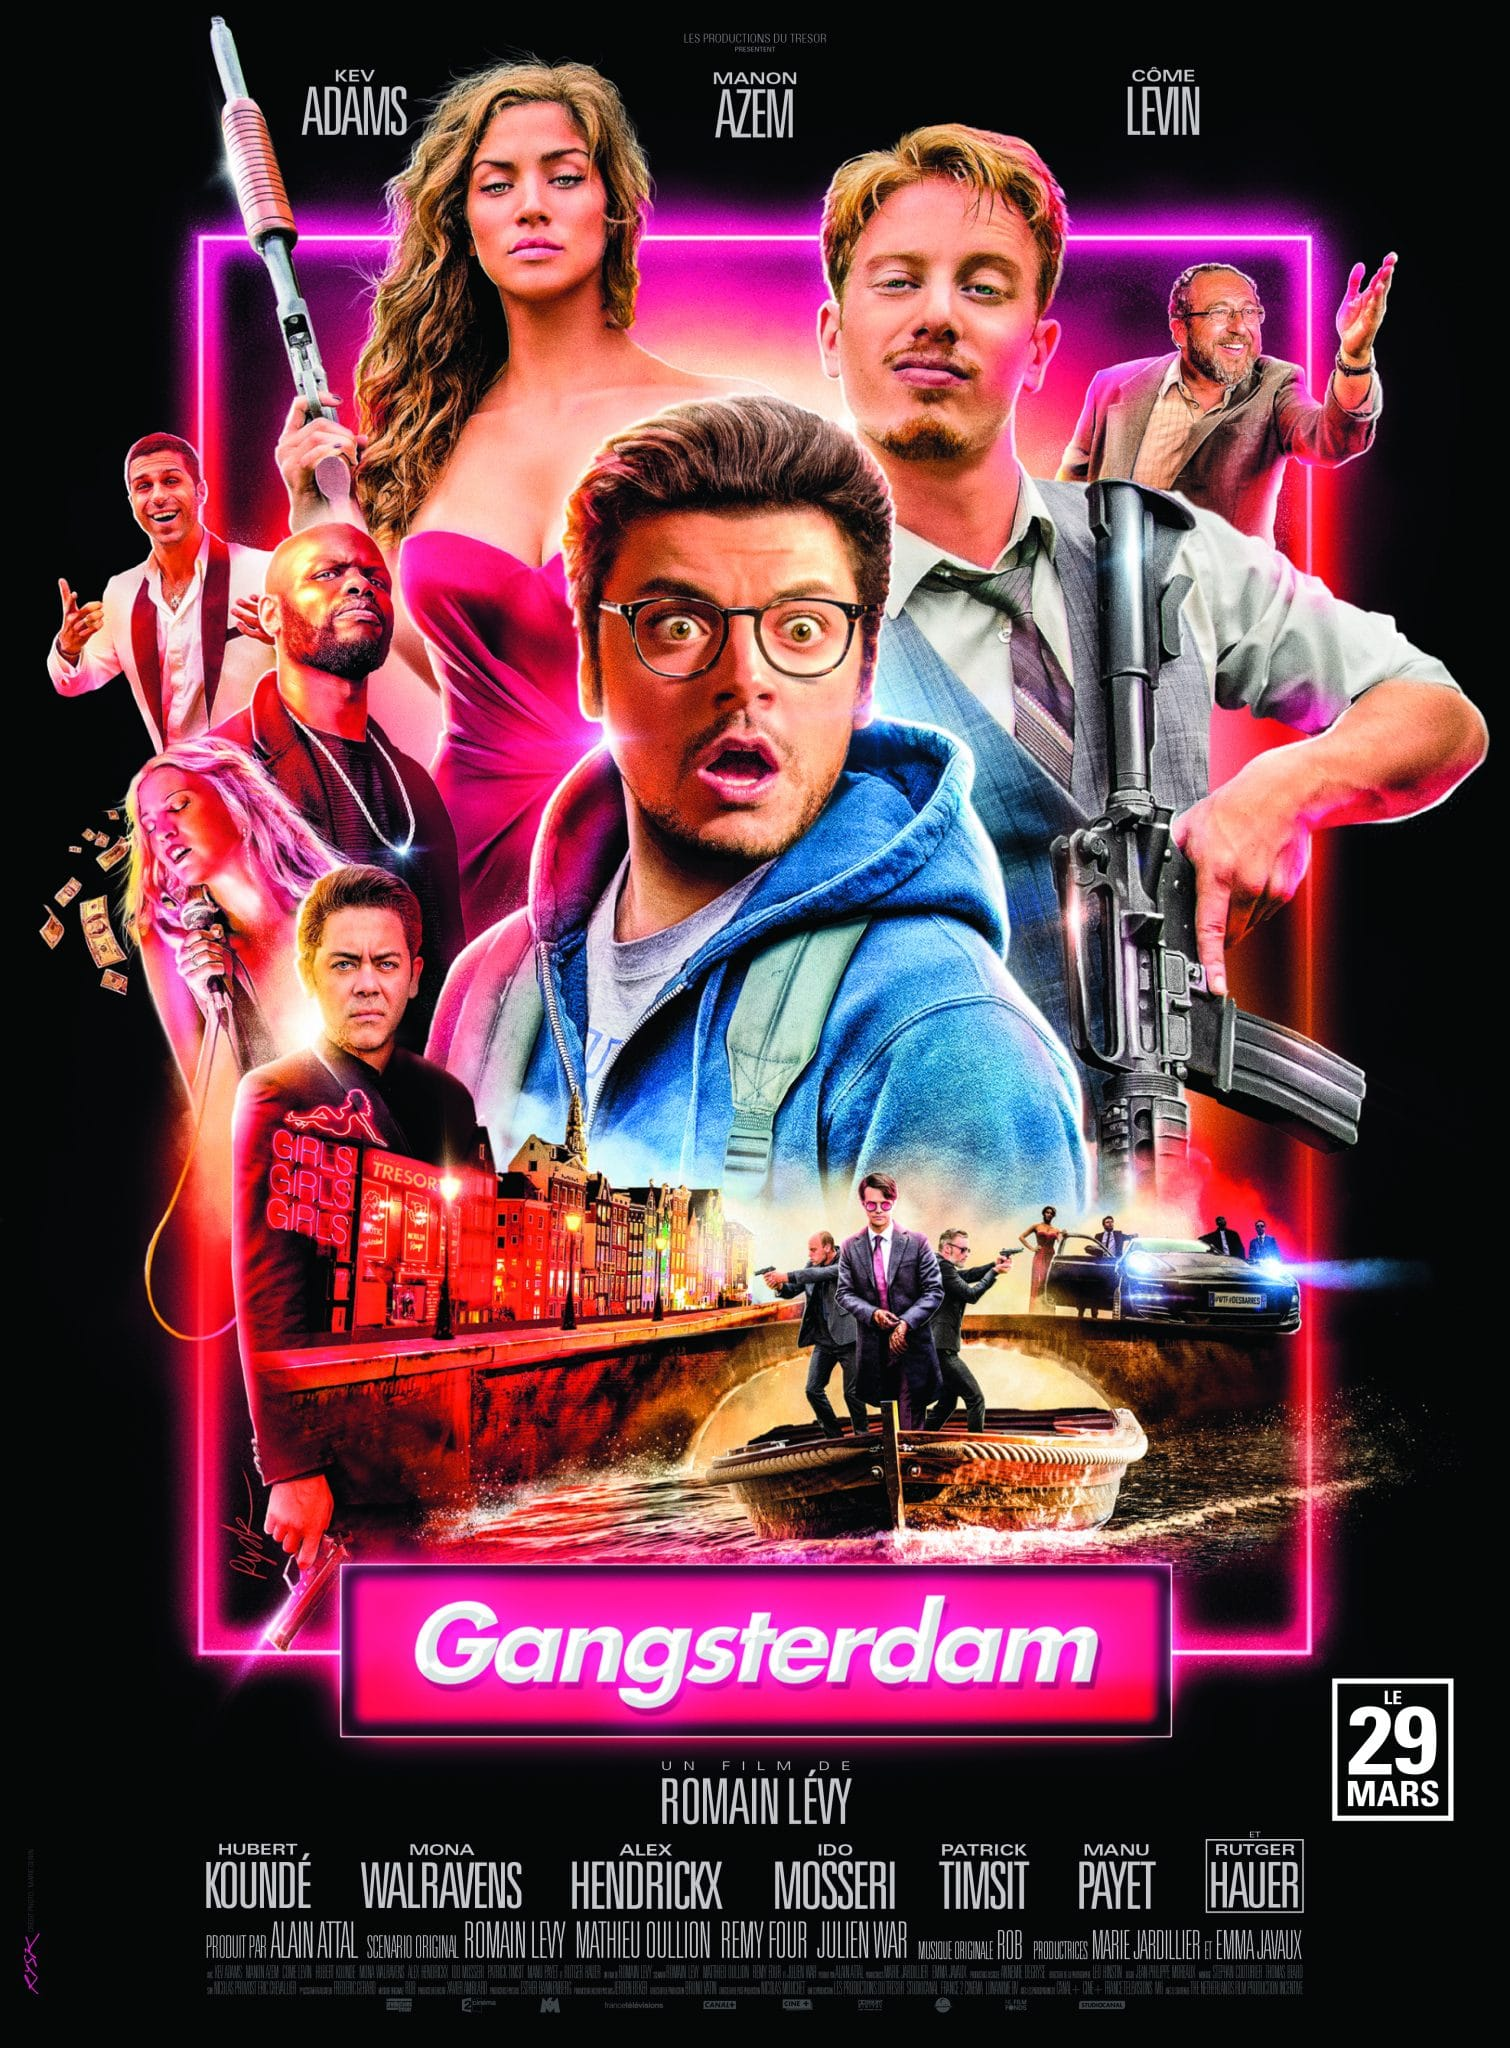 GANGSTERDAM affiche film Kev Adams